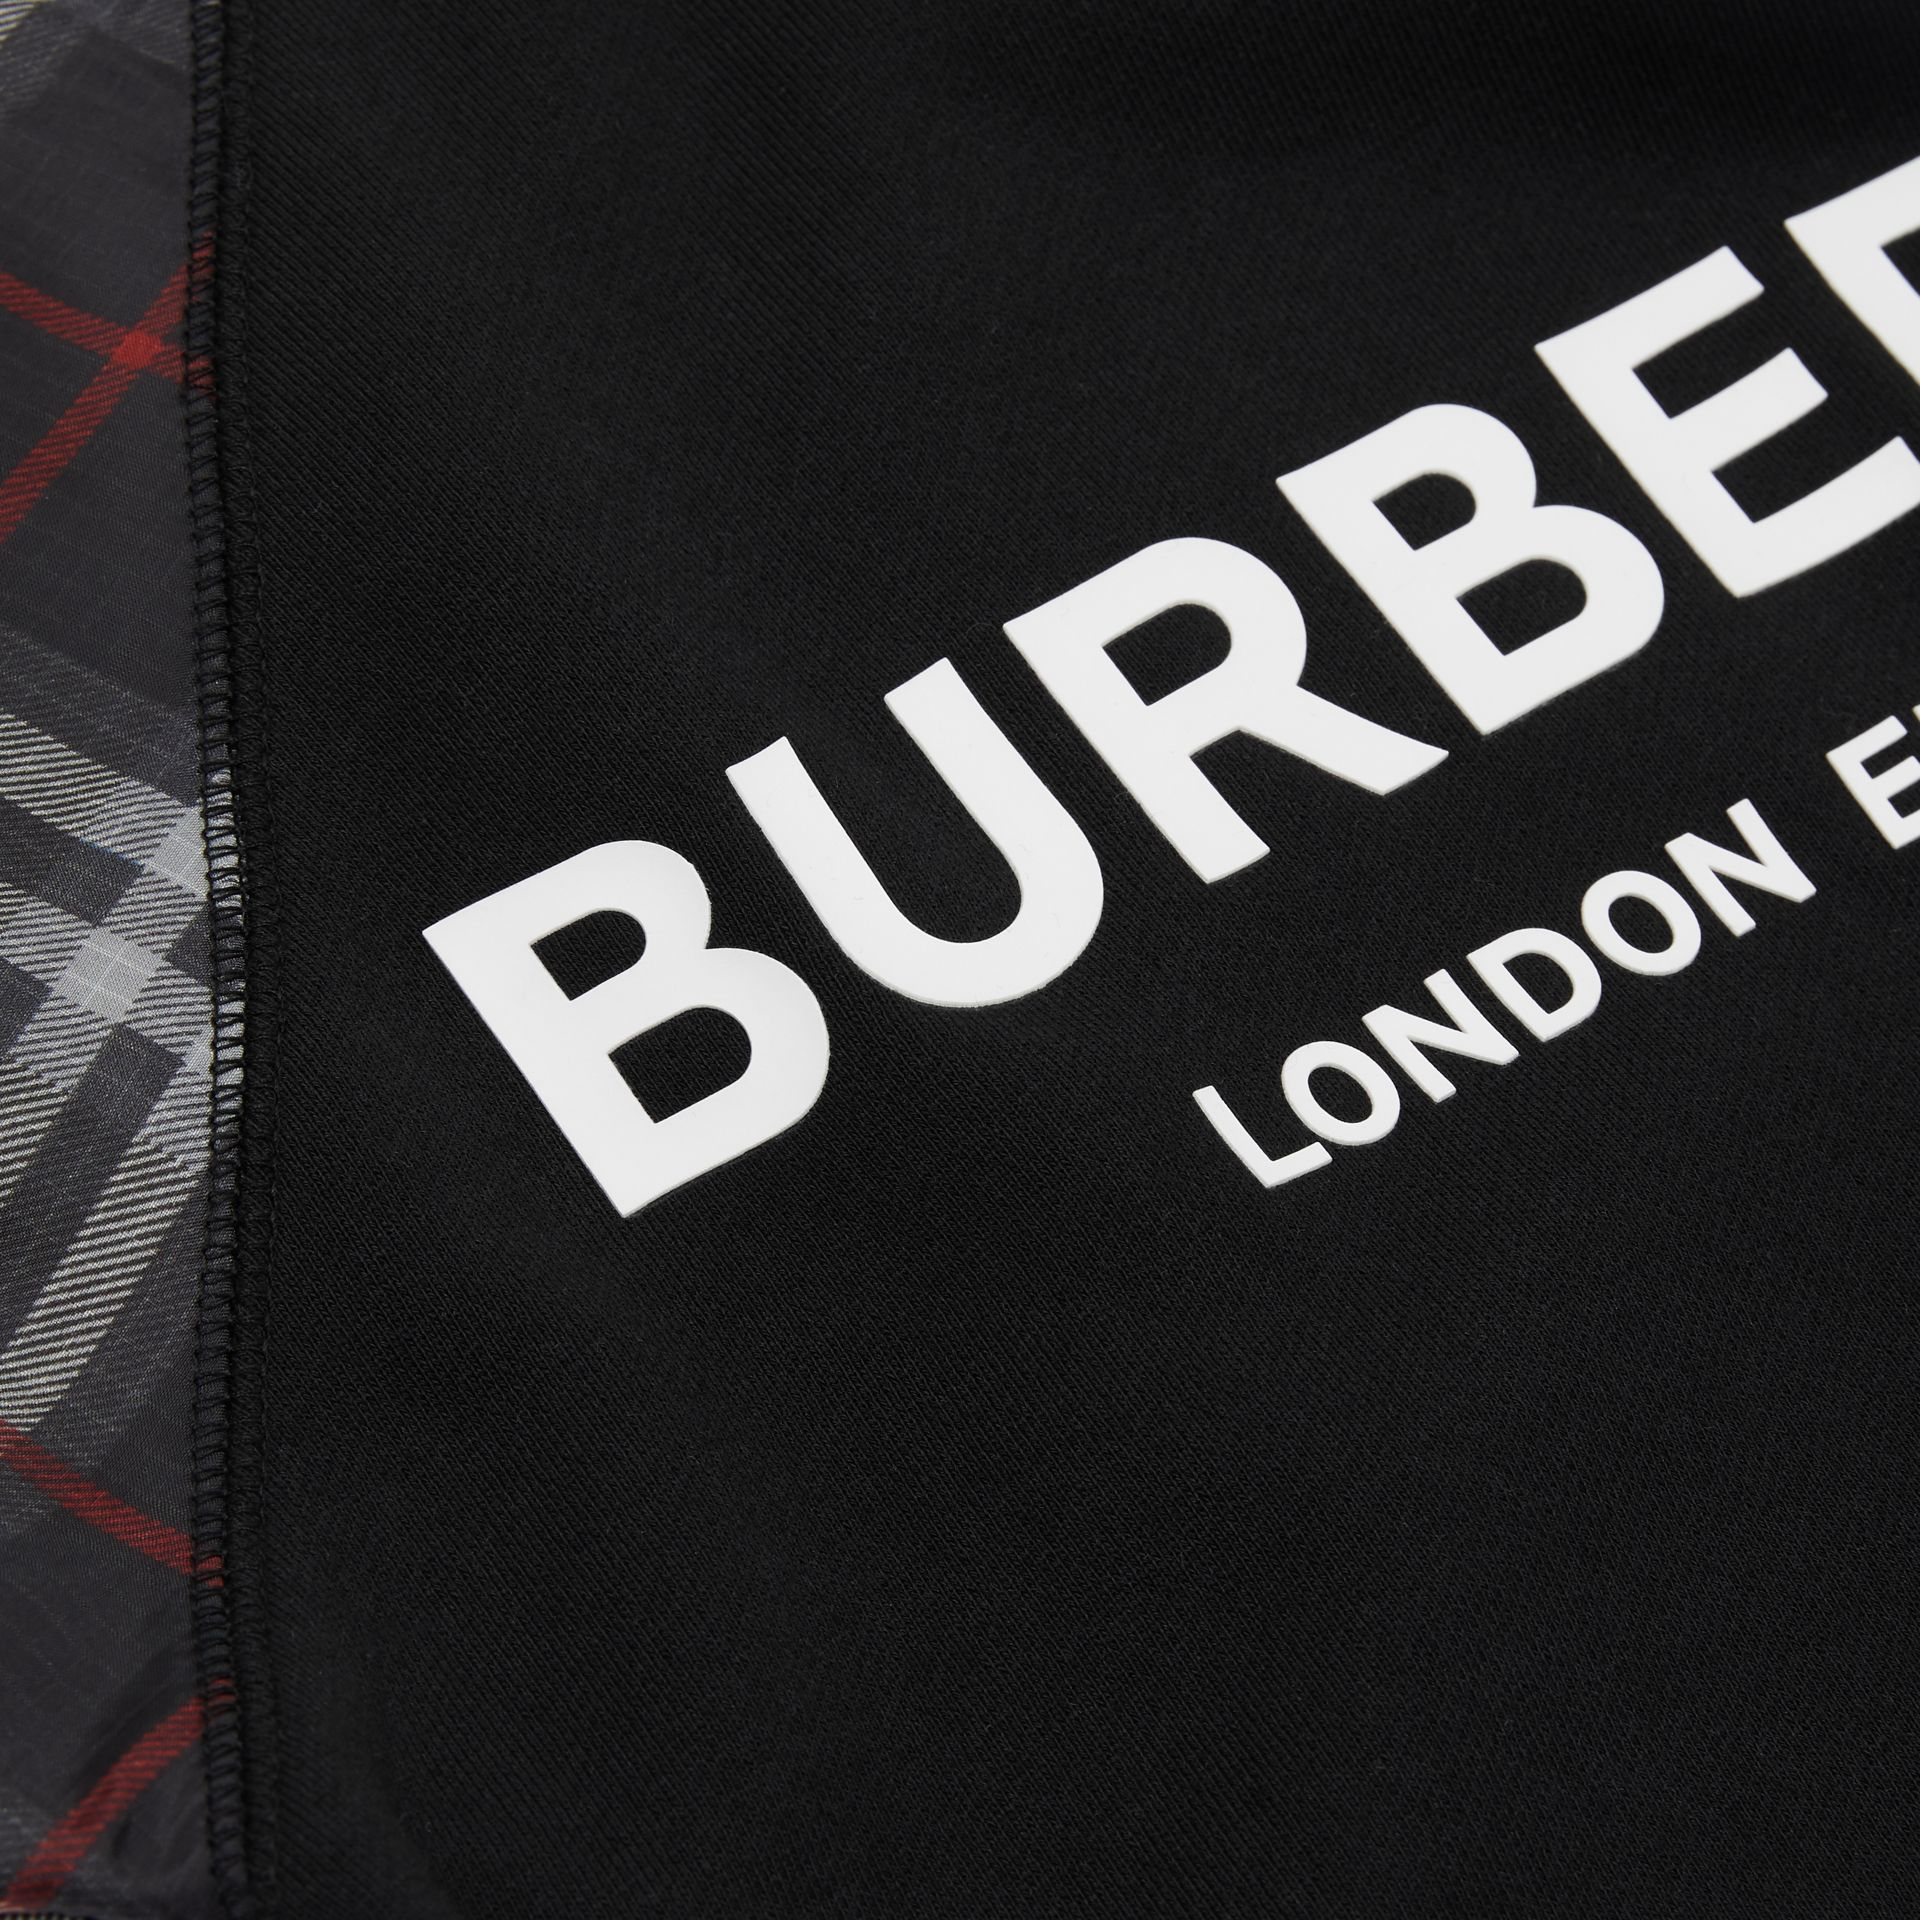 Sweat-shirt en coton avec logo et Vintage check (Noir) | Burberry - photo de la galerie 1